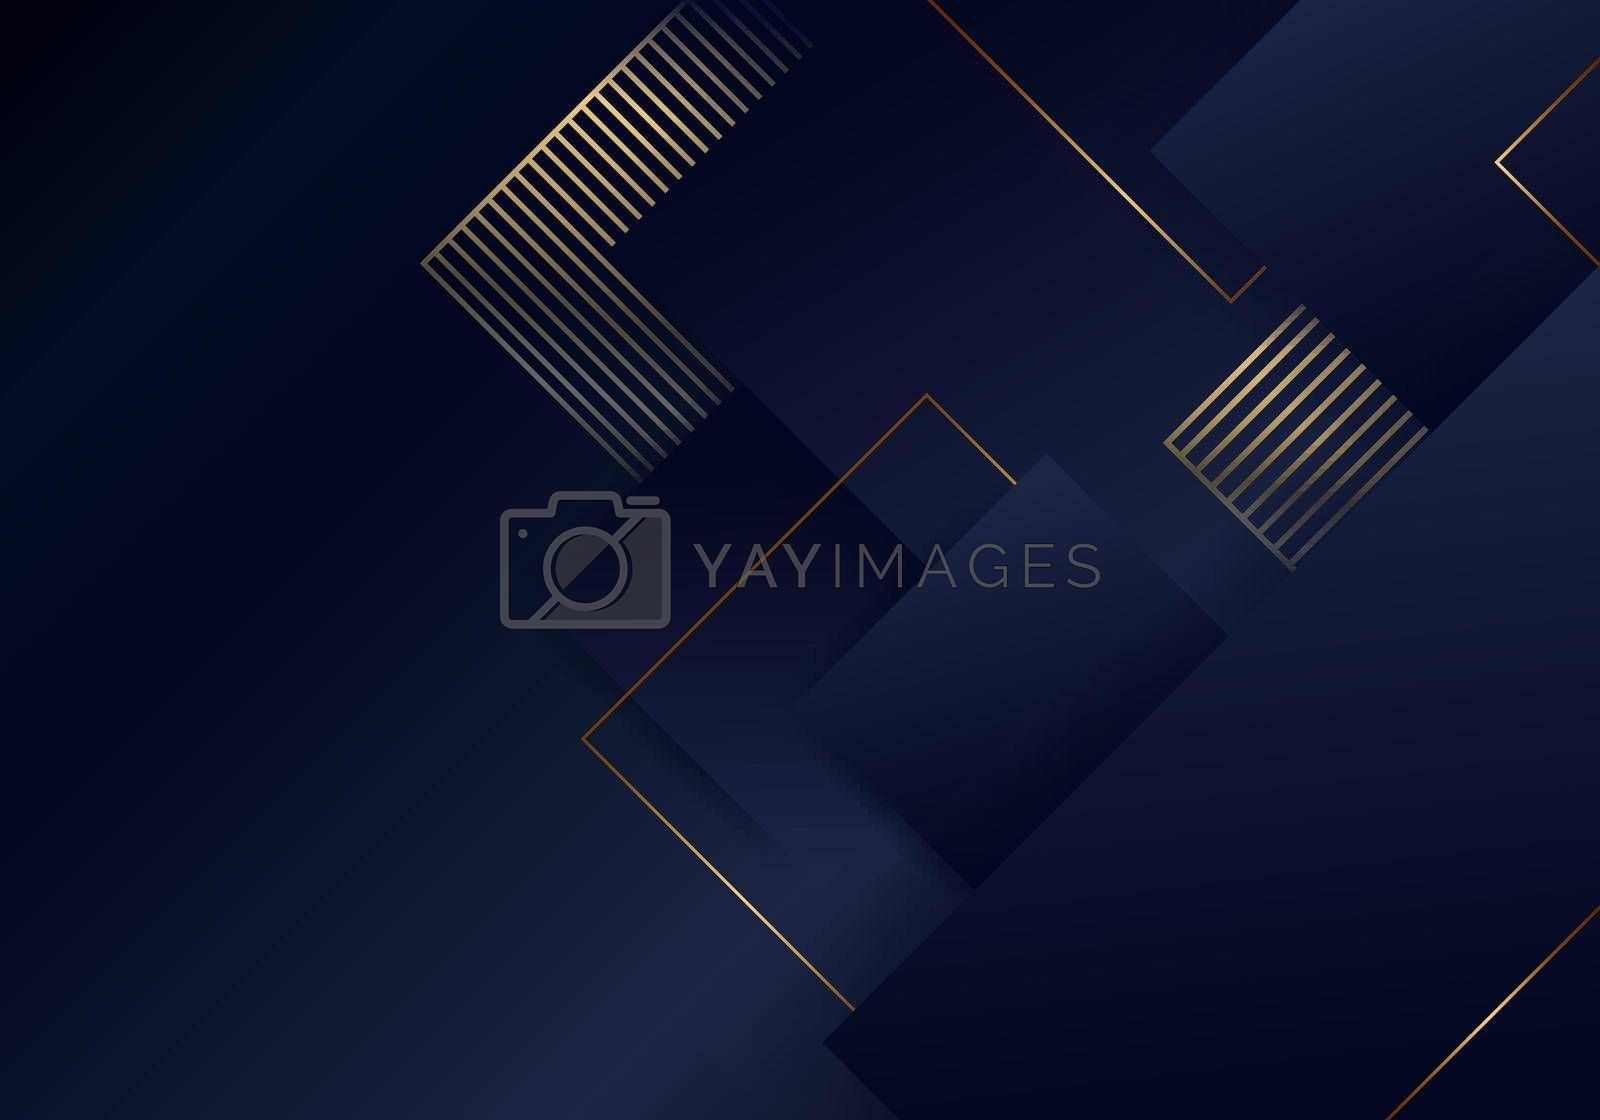 Royalty free image of Abstract luxury template elegant blue and gold squares overlapping layer pattern on dark blue background by phochi